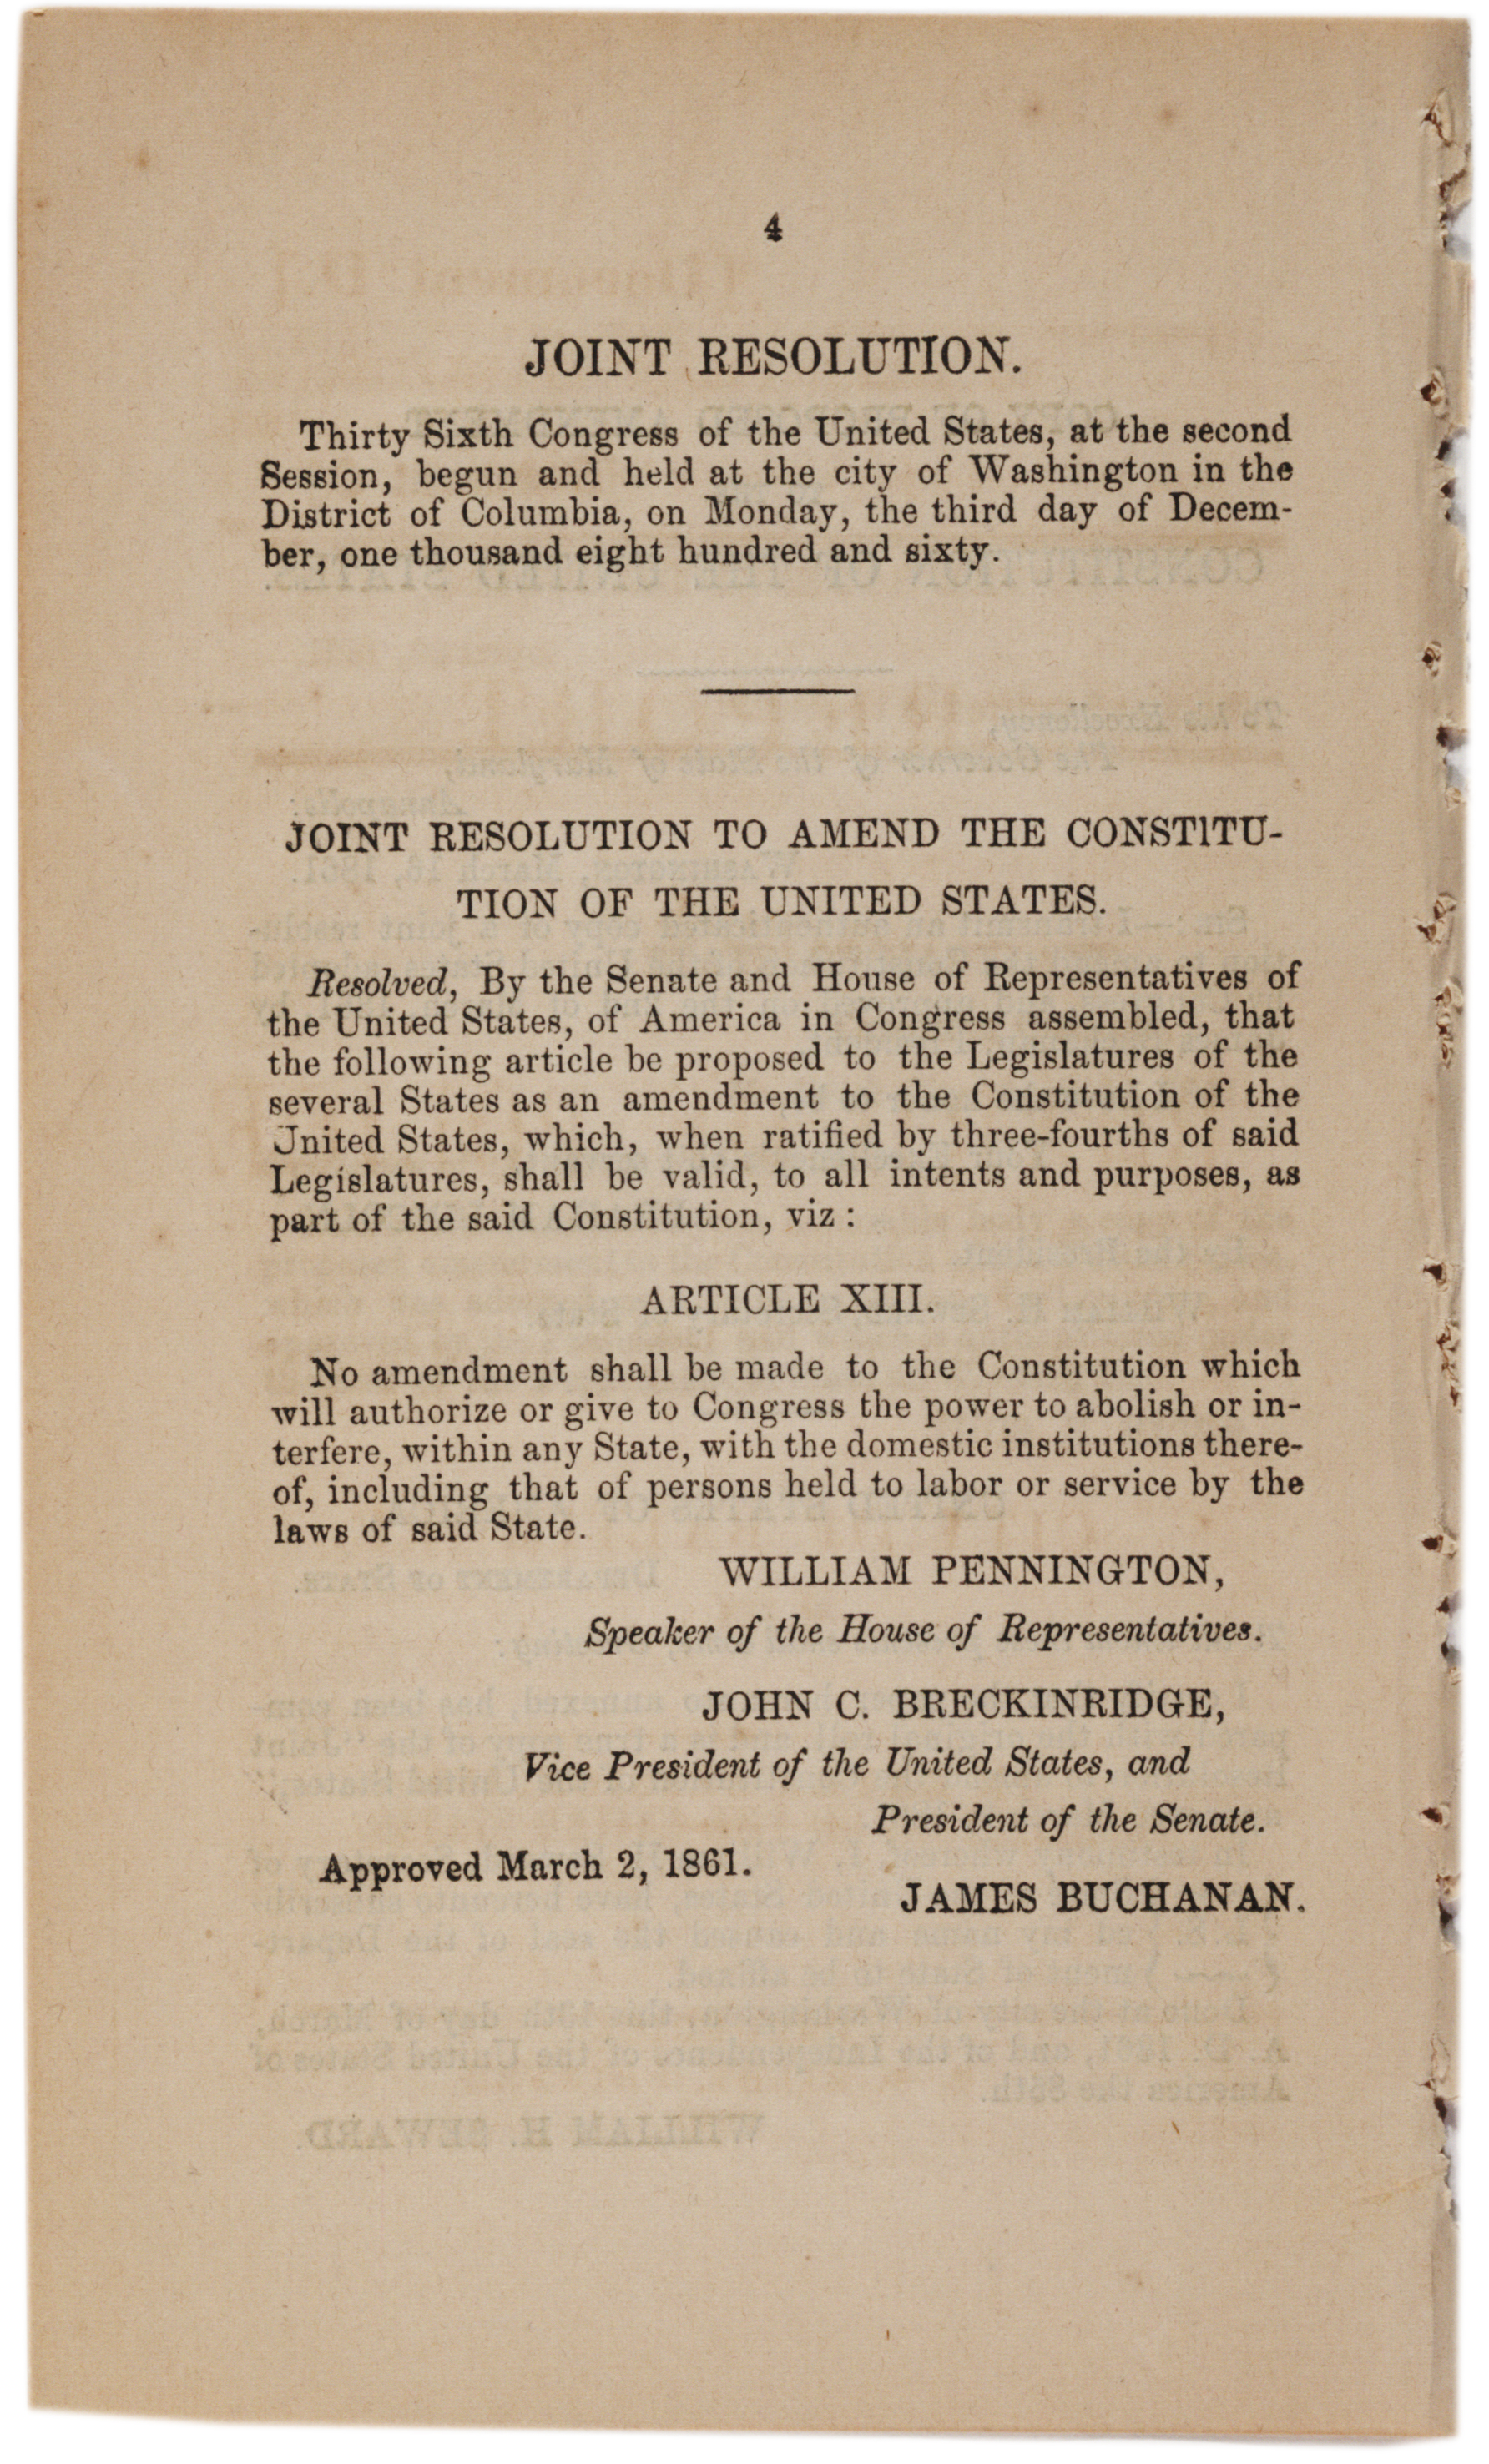 Proposed thirteenth amendment, April 30, 1861. (GLC09040p4)